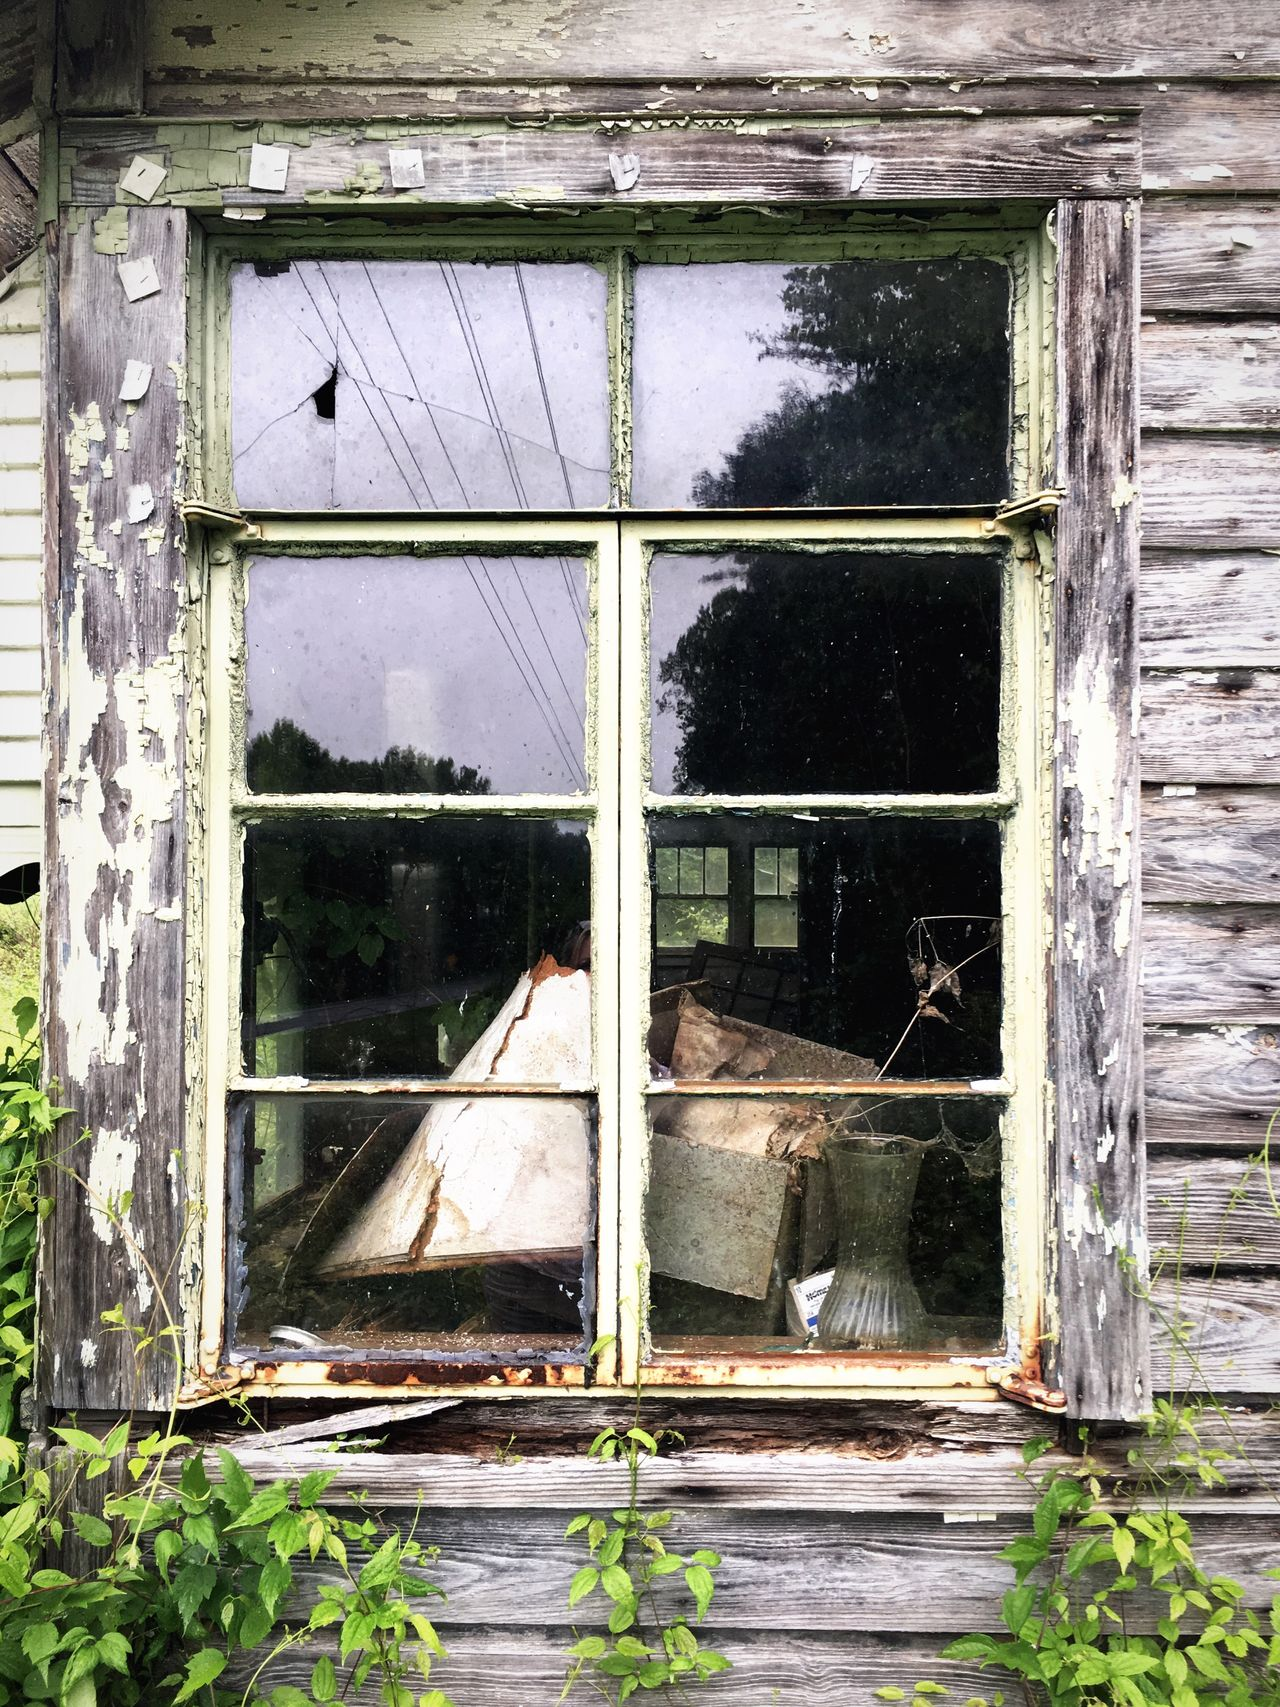 Appalachian Mountains Abandoned & Derelict Countryside Window Architecture Abandoned Building Exterior Built Structure No People Damaged Outdoors Desolate Day Destruction